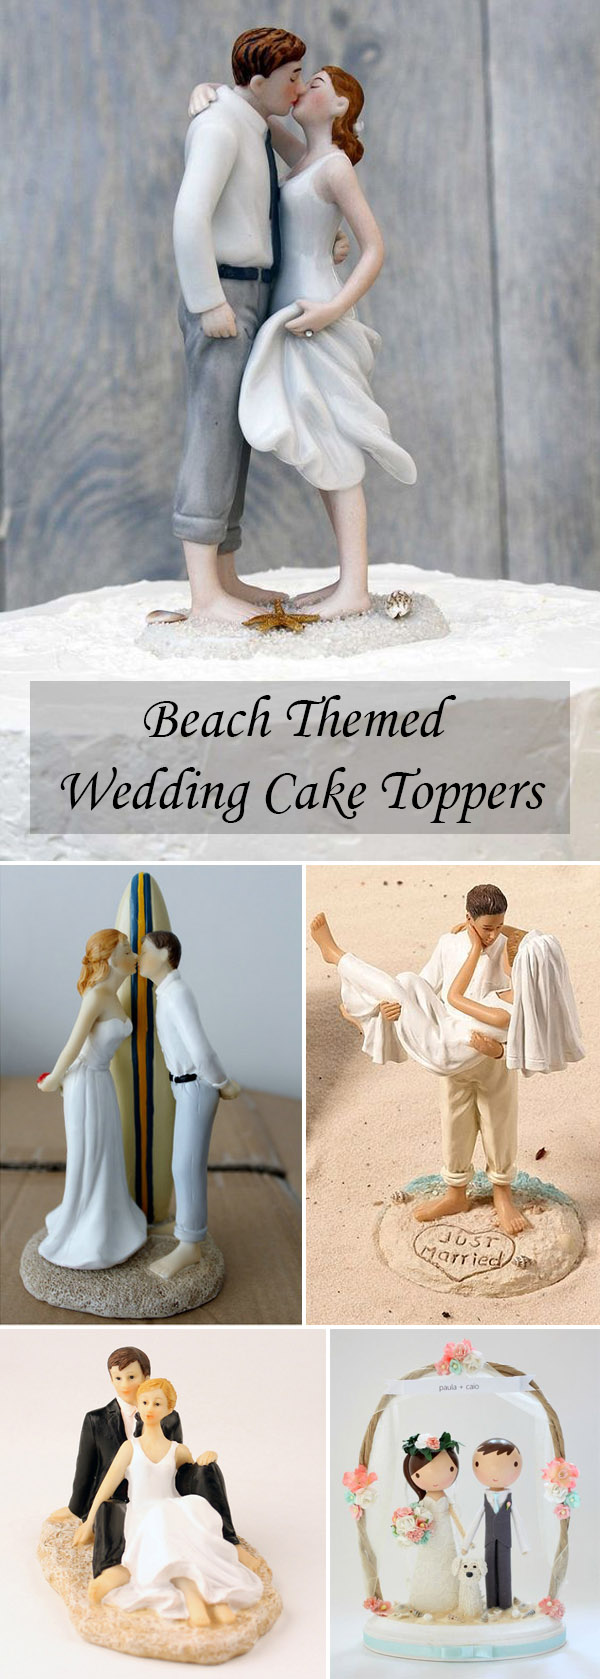 Different And Funny Wedding Gifts And Cake Toppers